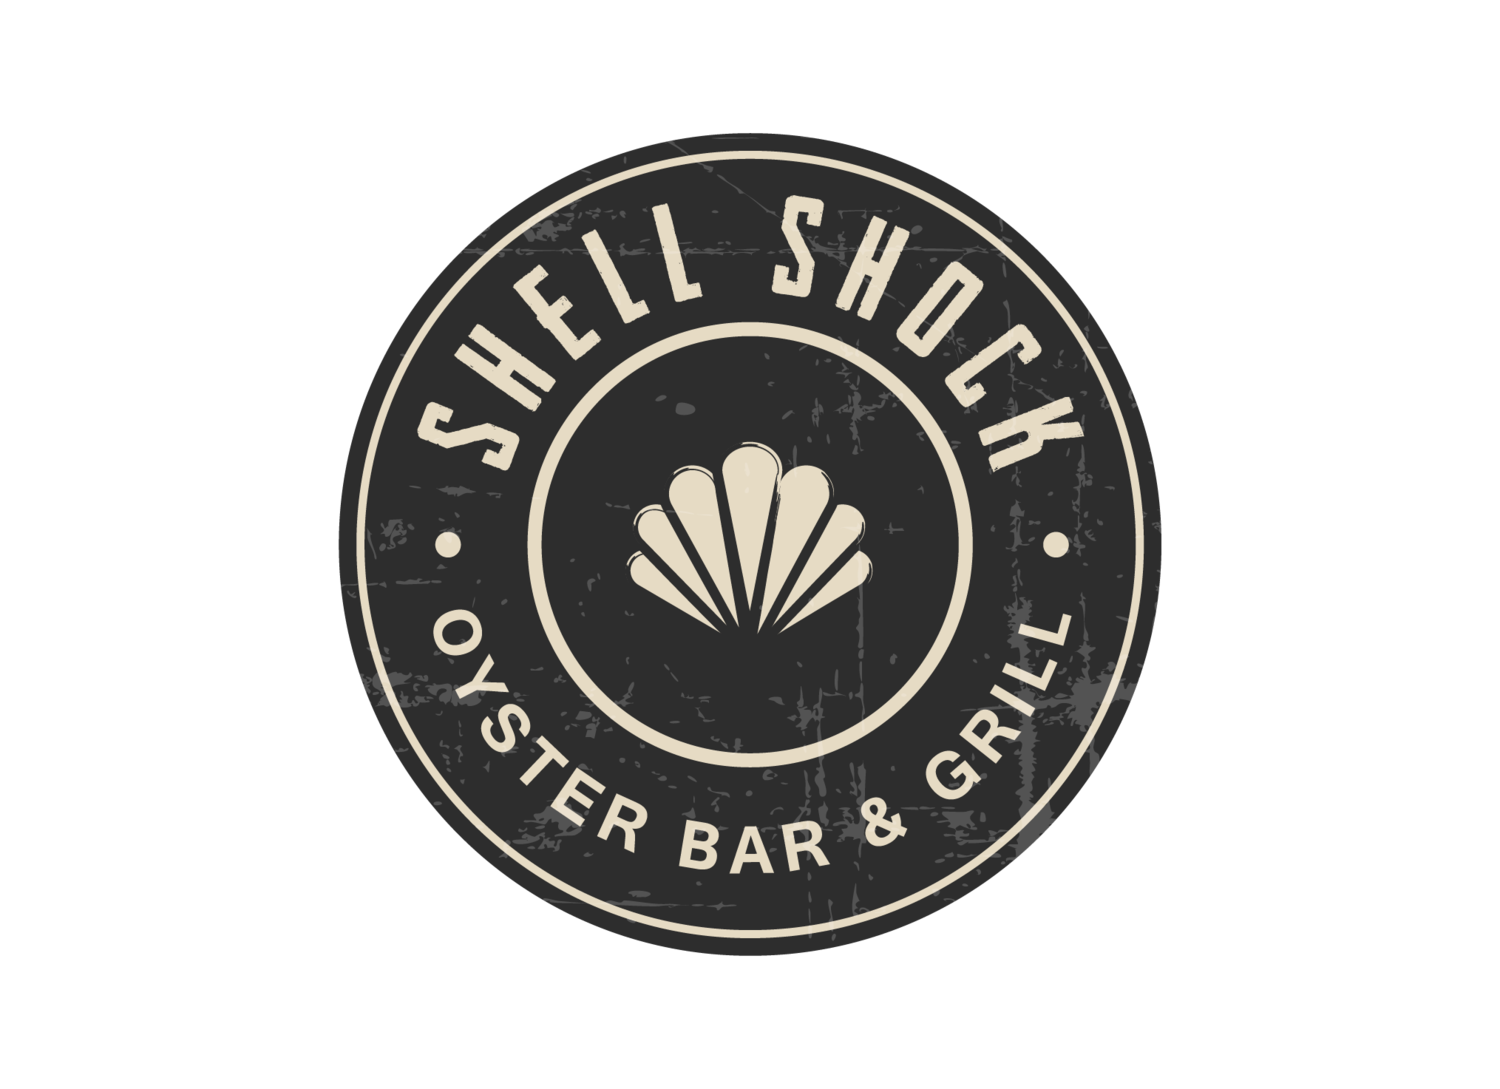 SHELL SHOCK RESTAURANT